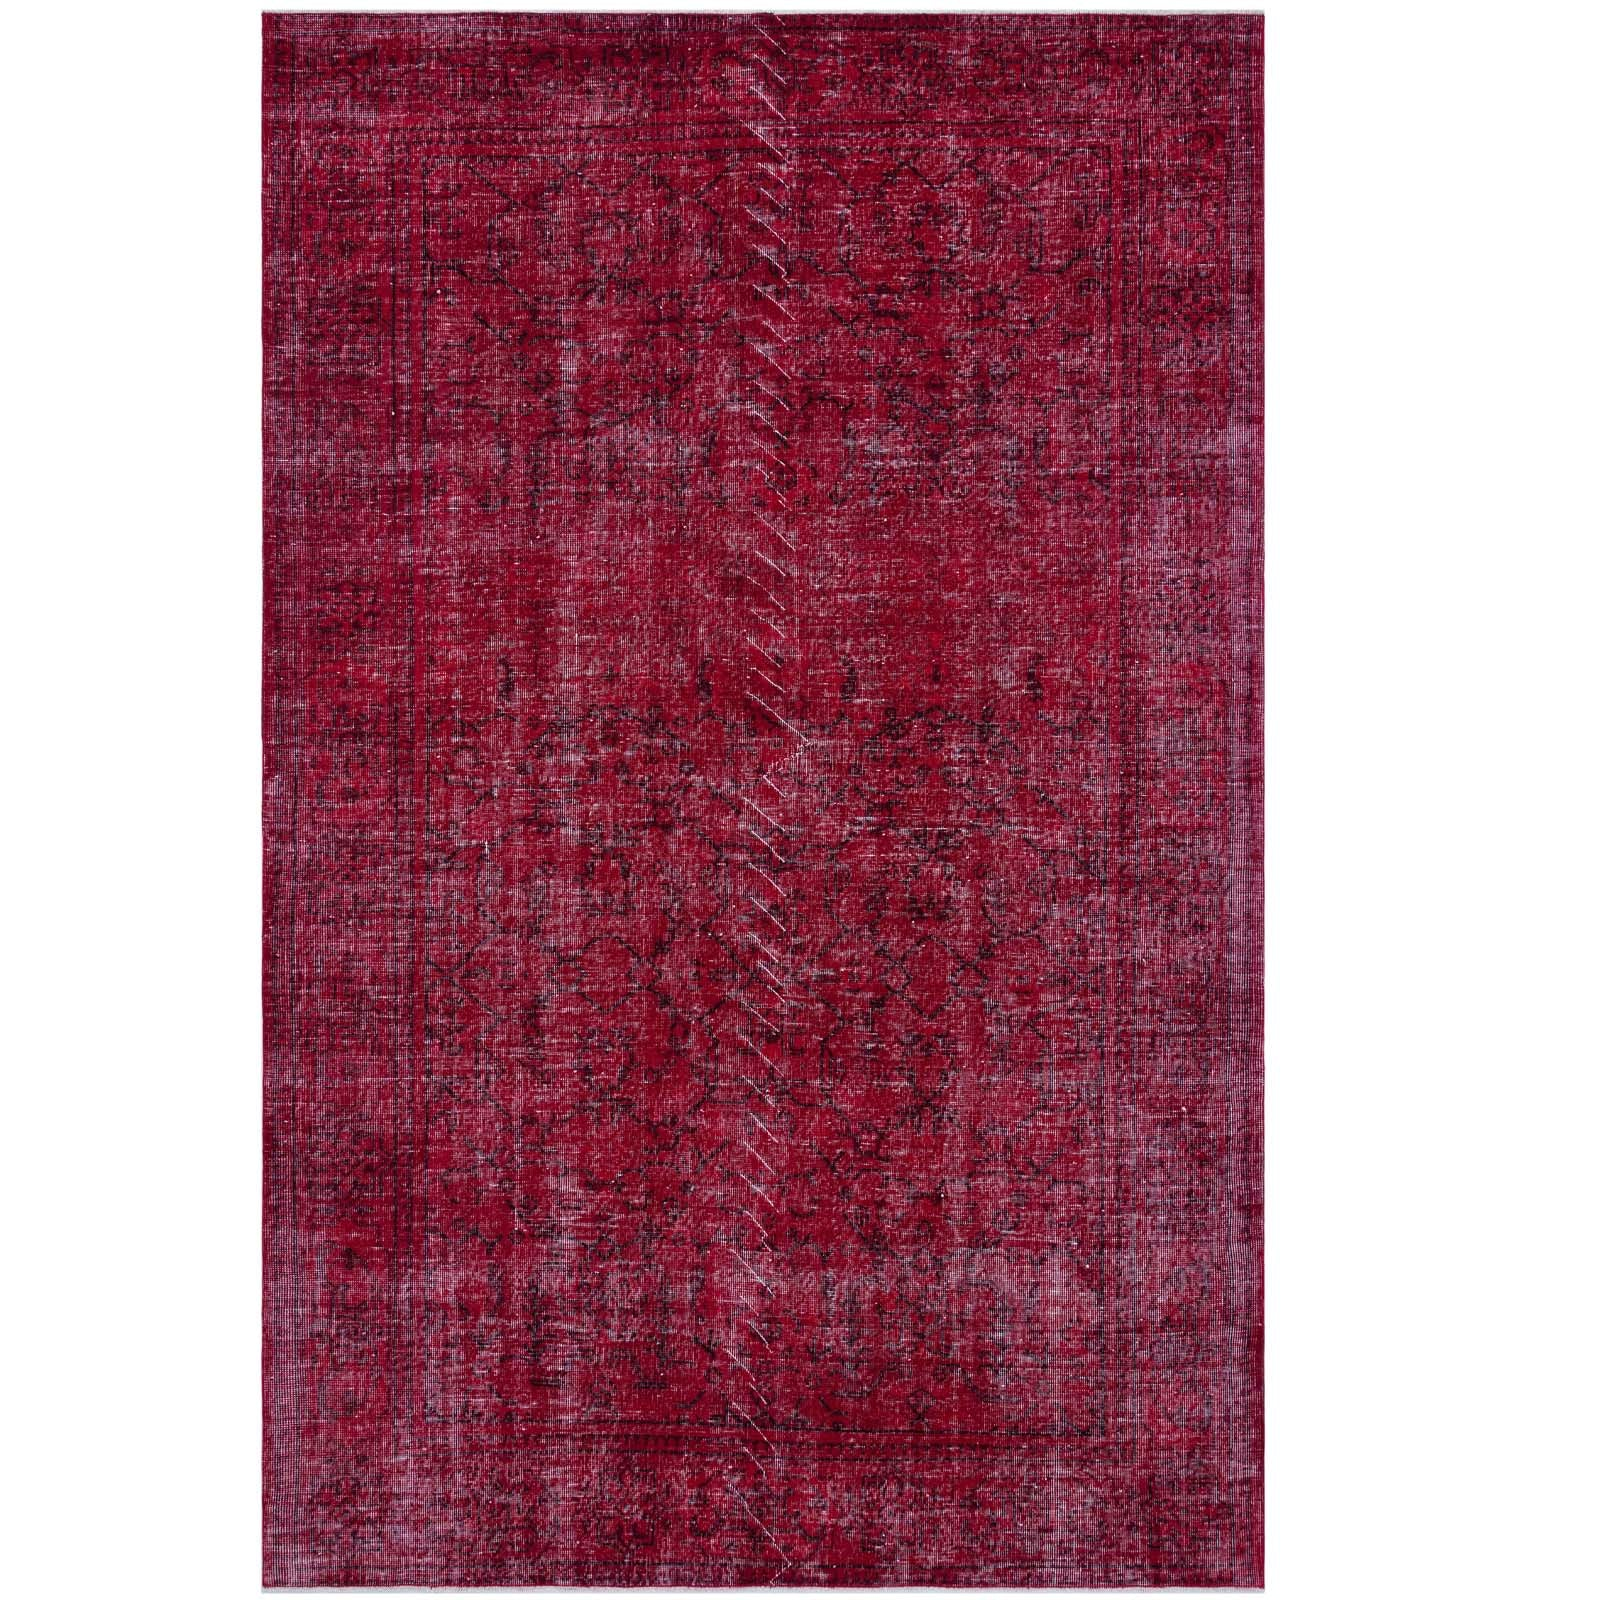 Hali 192X288 CM Bursa Handmade over dyed rug 1417 -  192*288 سجاده بورصة صناعة يدوية على بساط مصبوغ - Shop Online Furniture and Home Decor Store in Dubai, UAE at ebarza